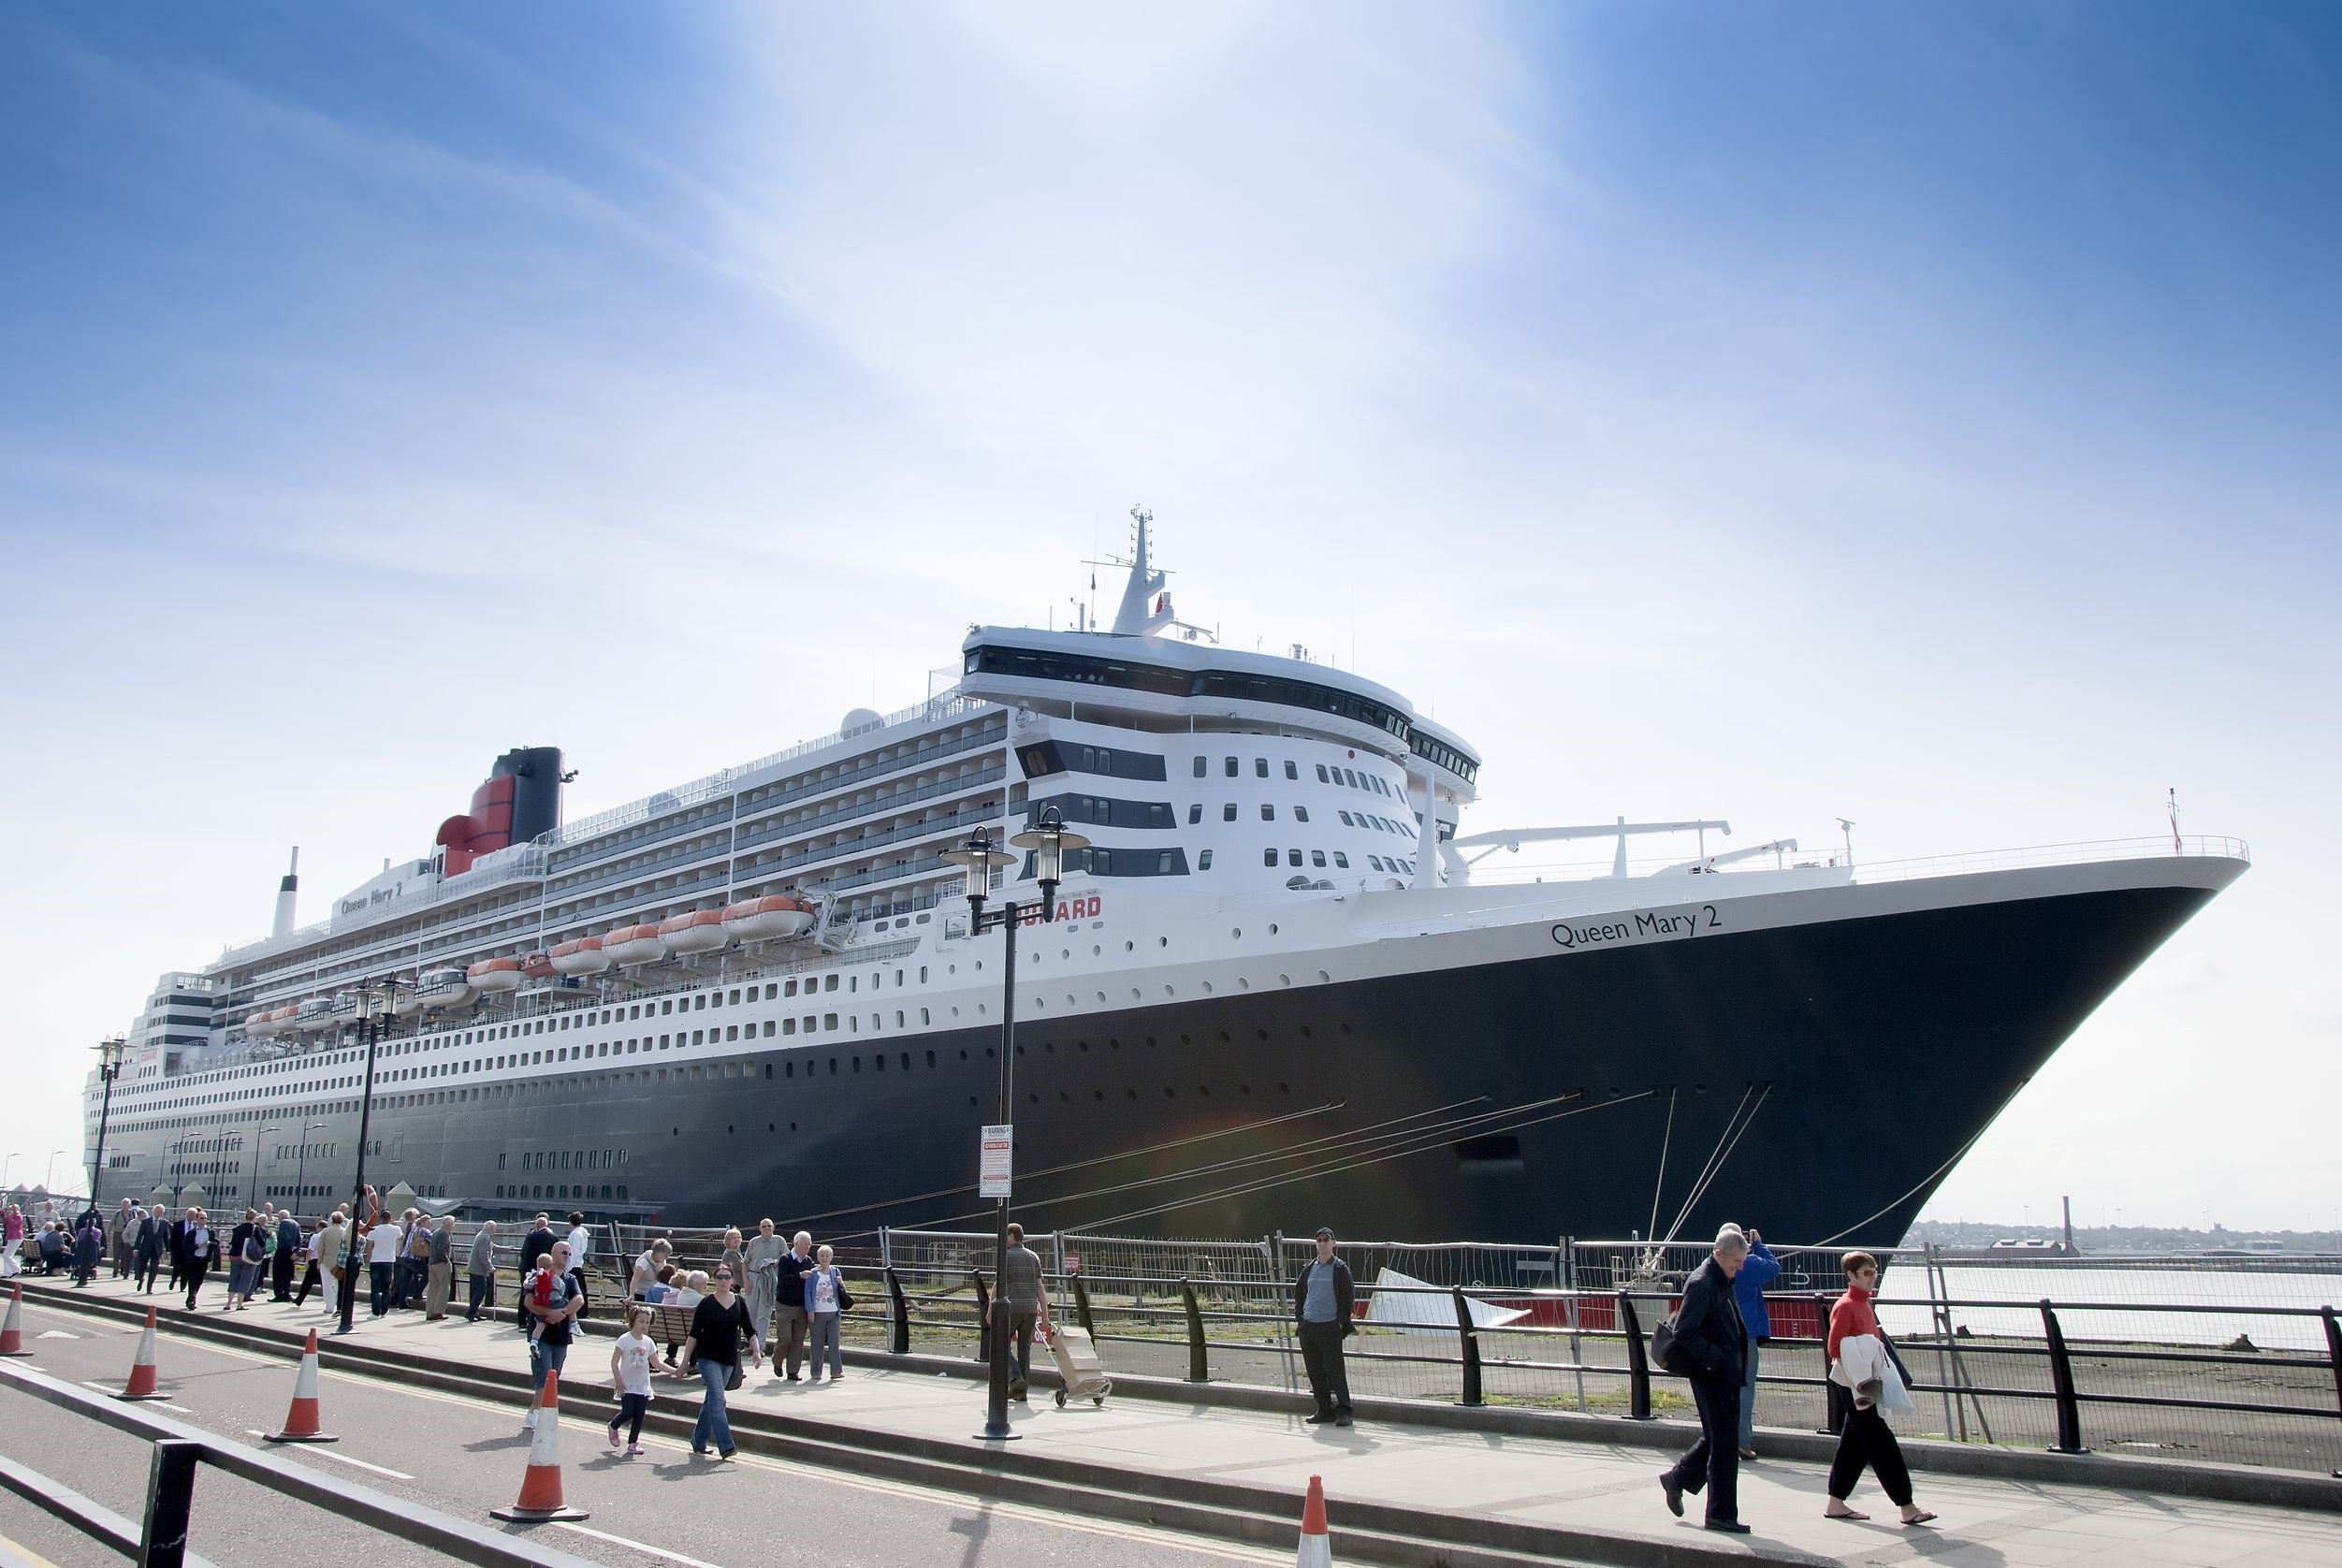 Things You Should Know Before Going on a Cruise